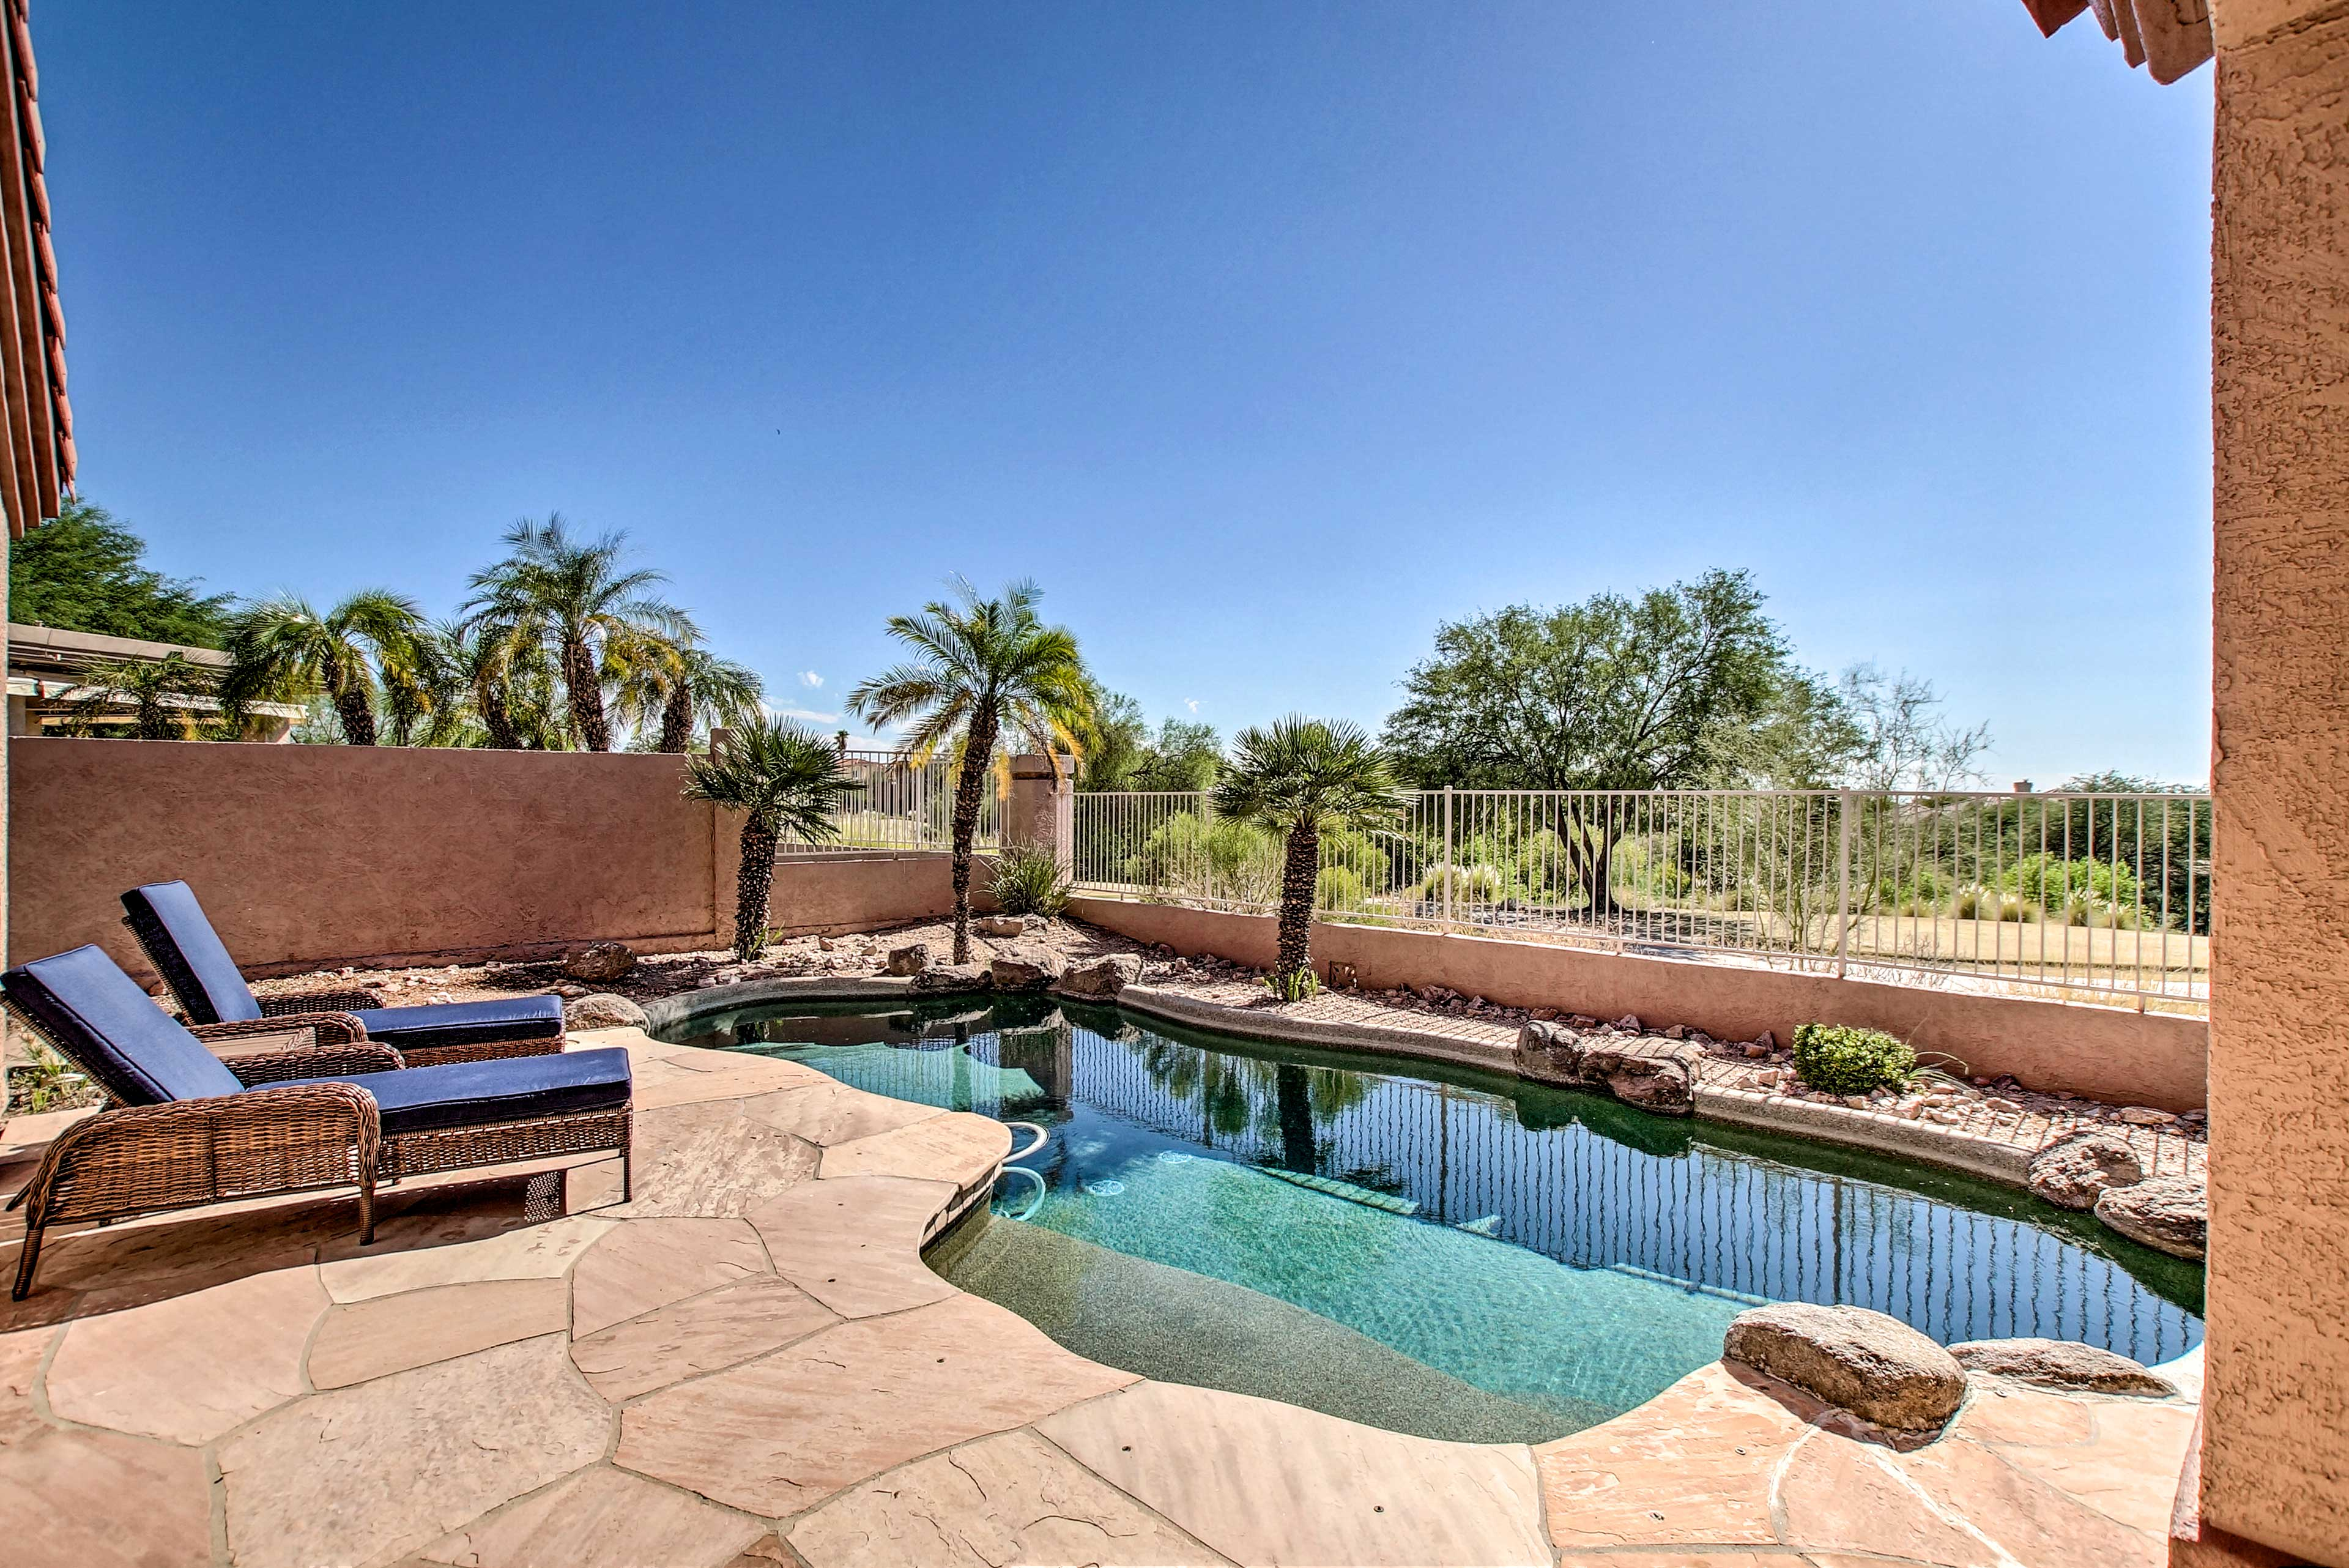 Cool off from the desert sun and dip your toes in this refreshing pool.